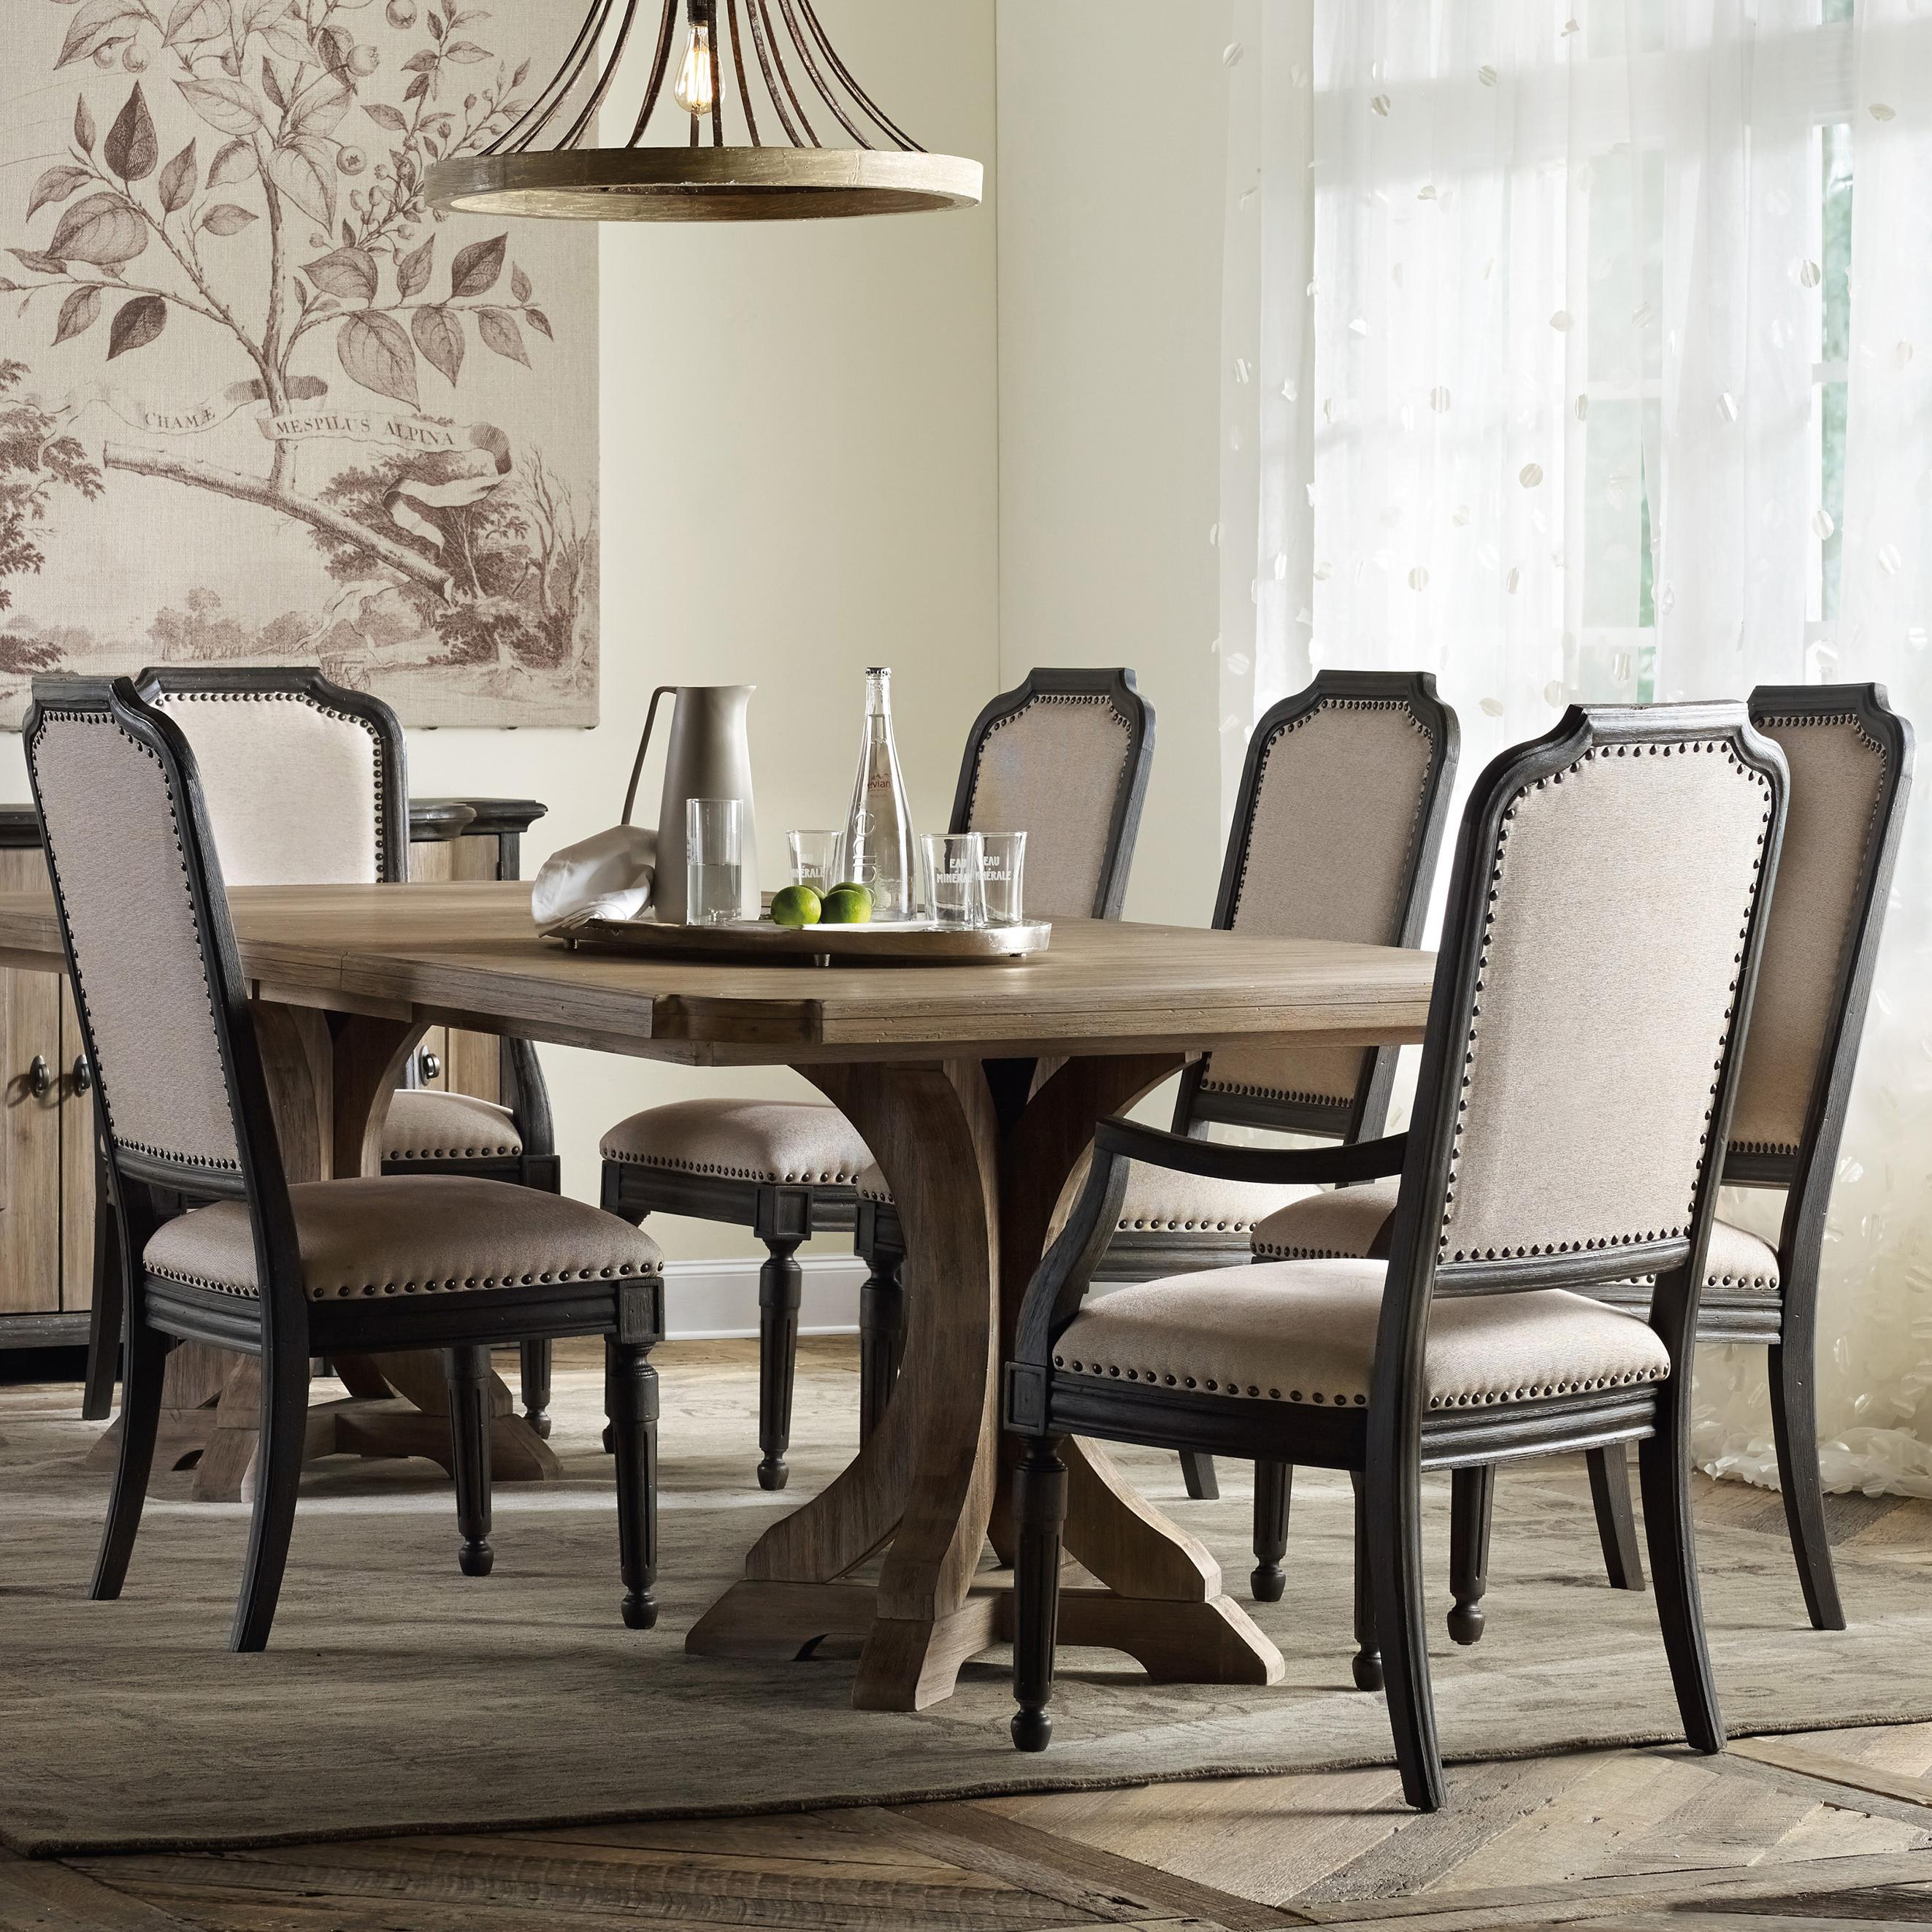 Hooker Furniture Corsica Rectangle Pedestal Dining Table Set With Upholstered Chairs Wayside Furniture Dining 7 Or More Piece Sets